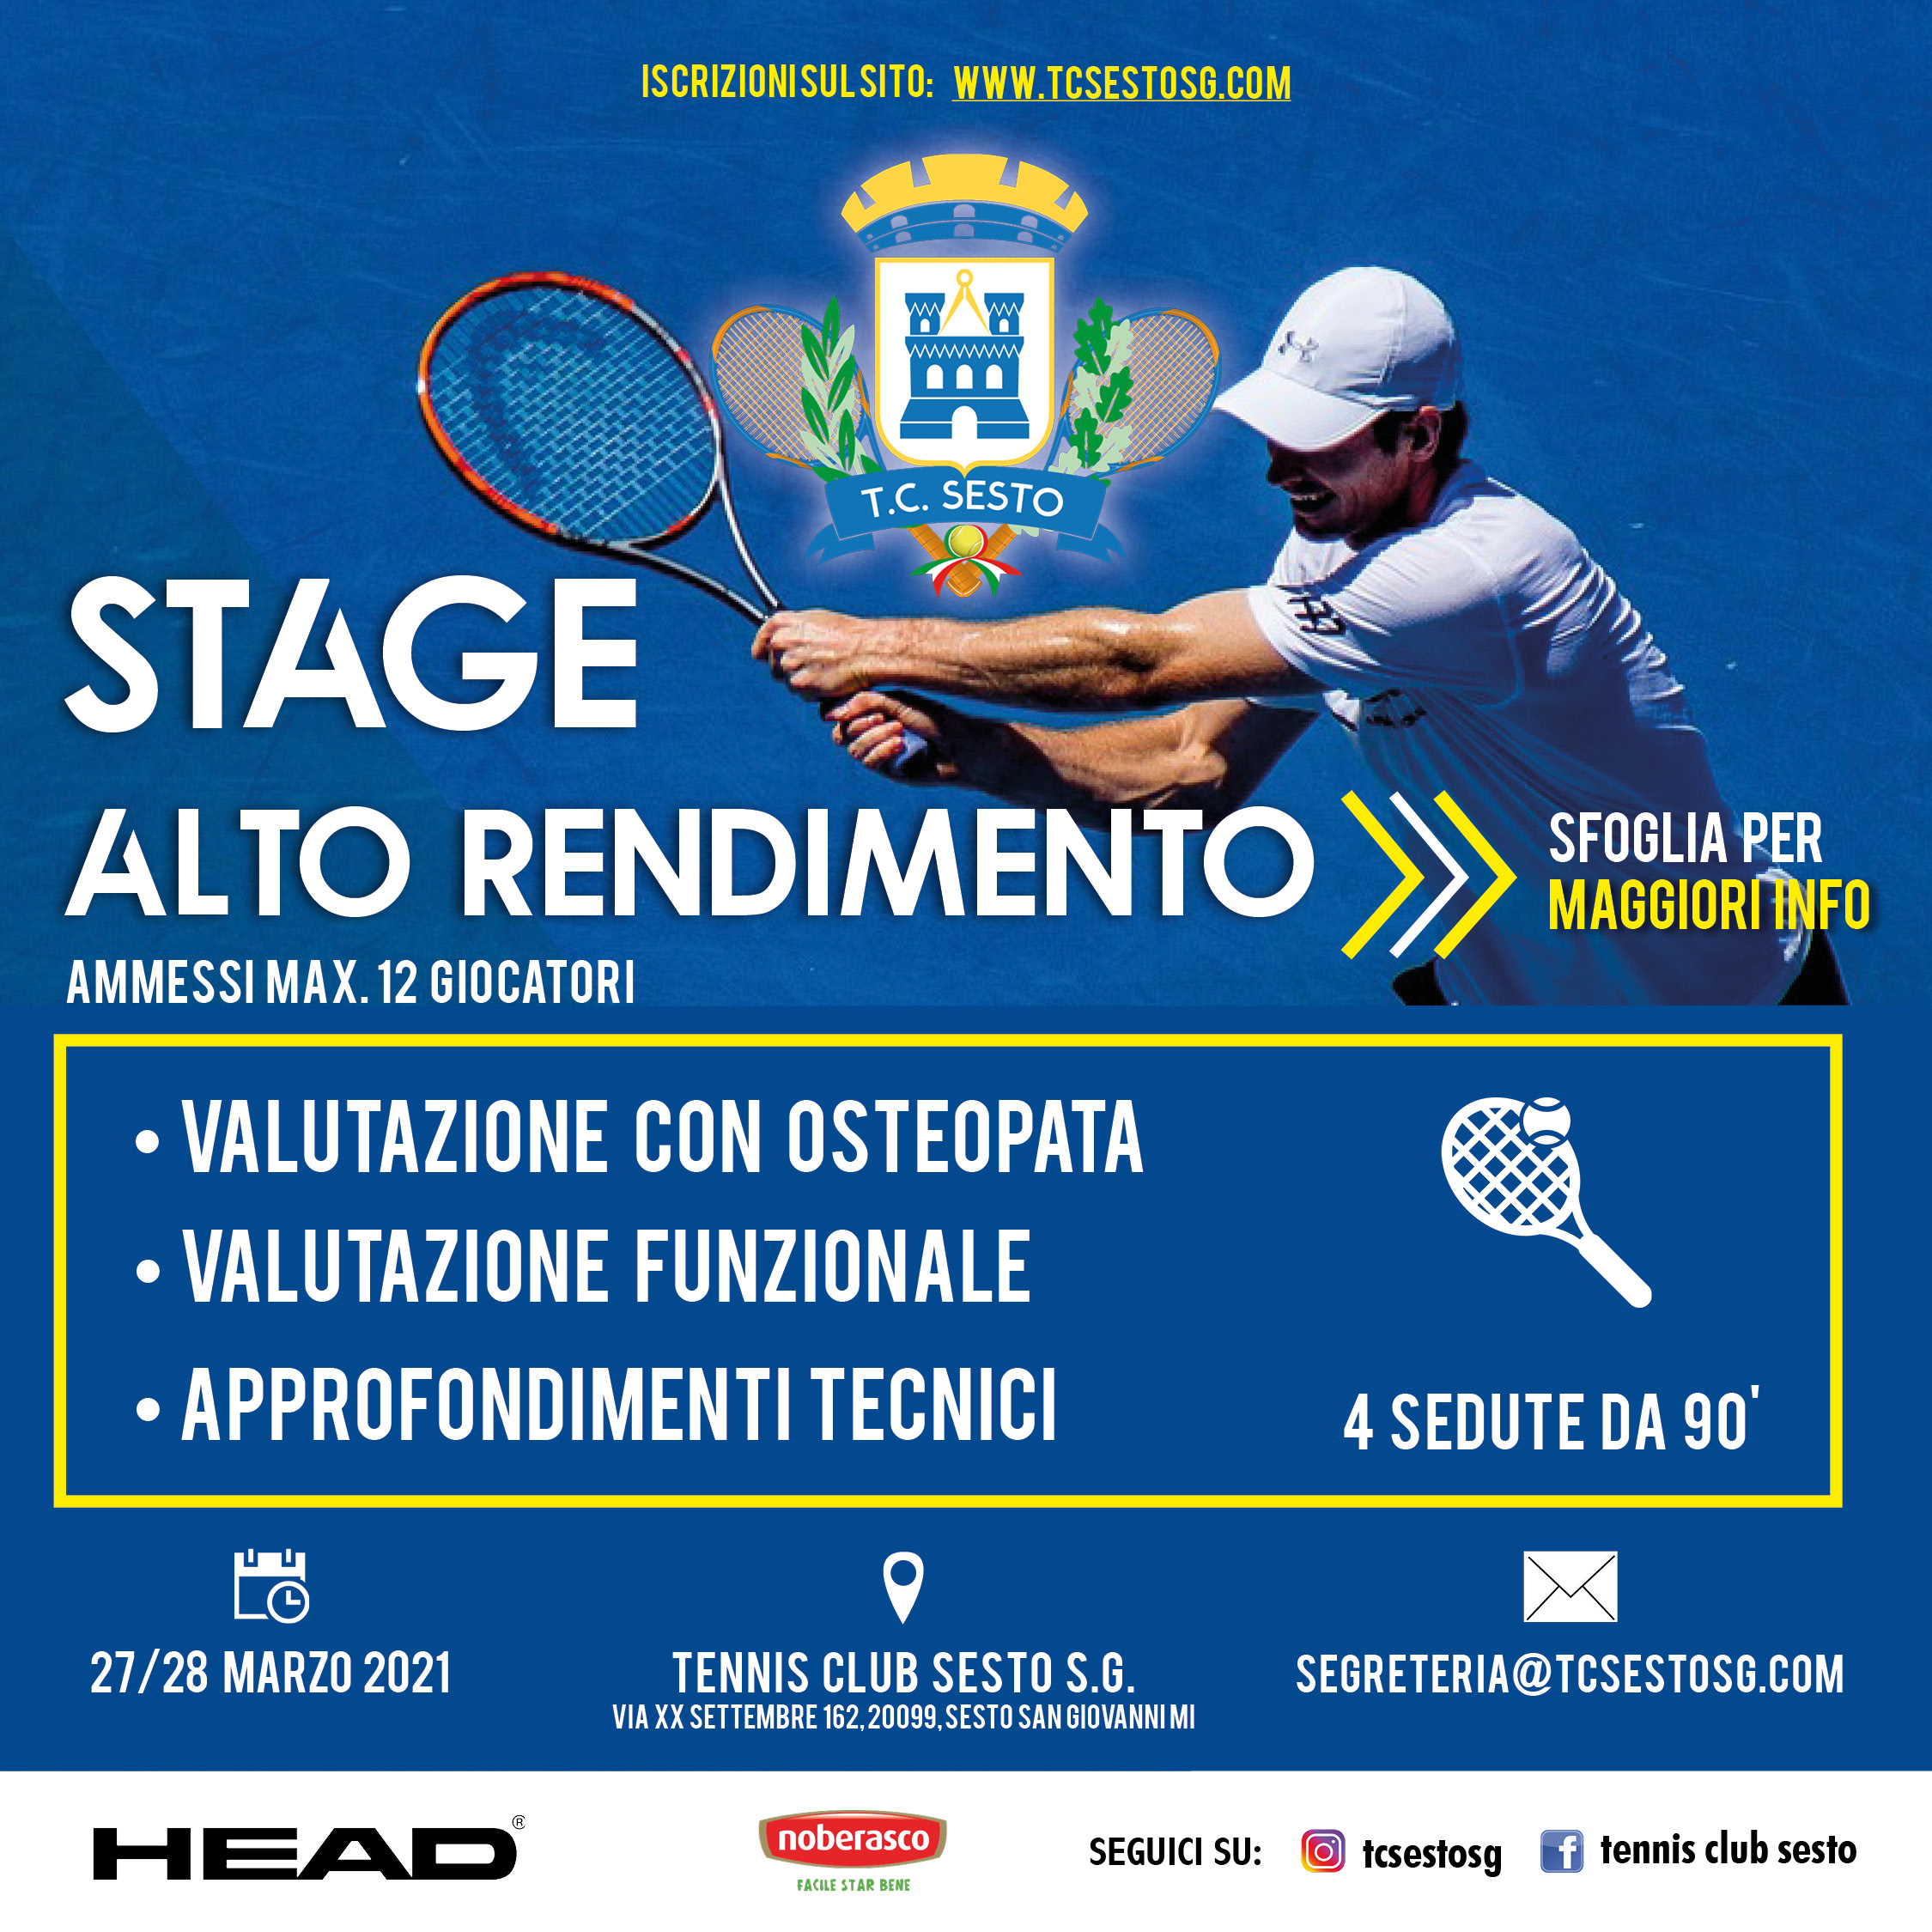 STAGE MARZO 2021